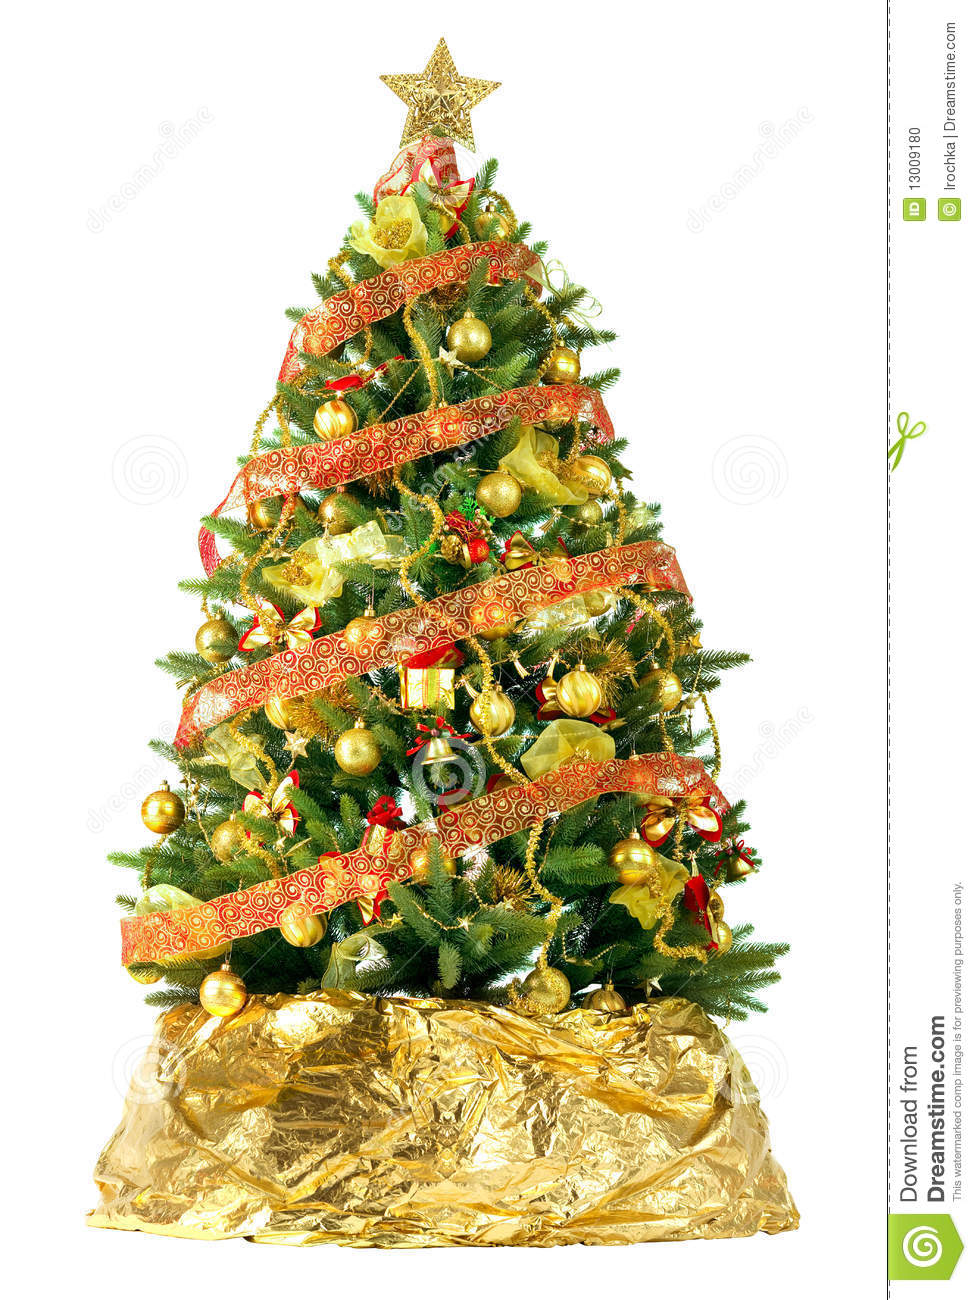 Beautiful Christmas Tree Stock Photo Image 13009180